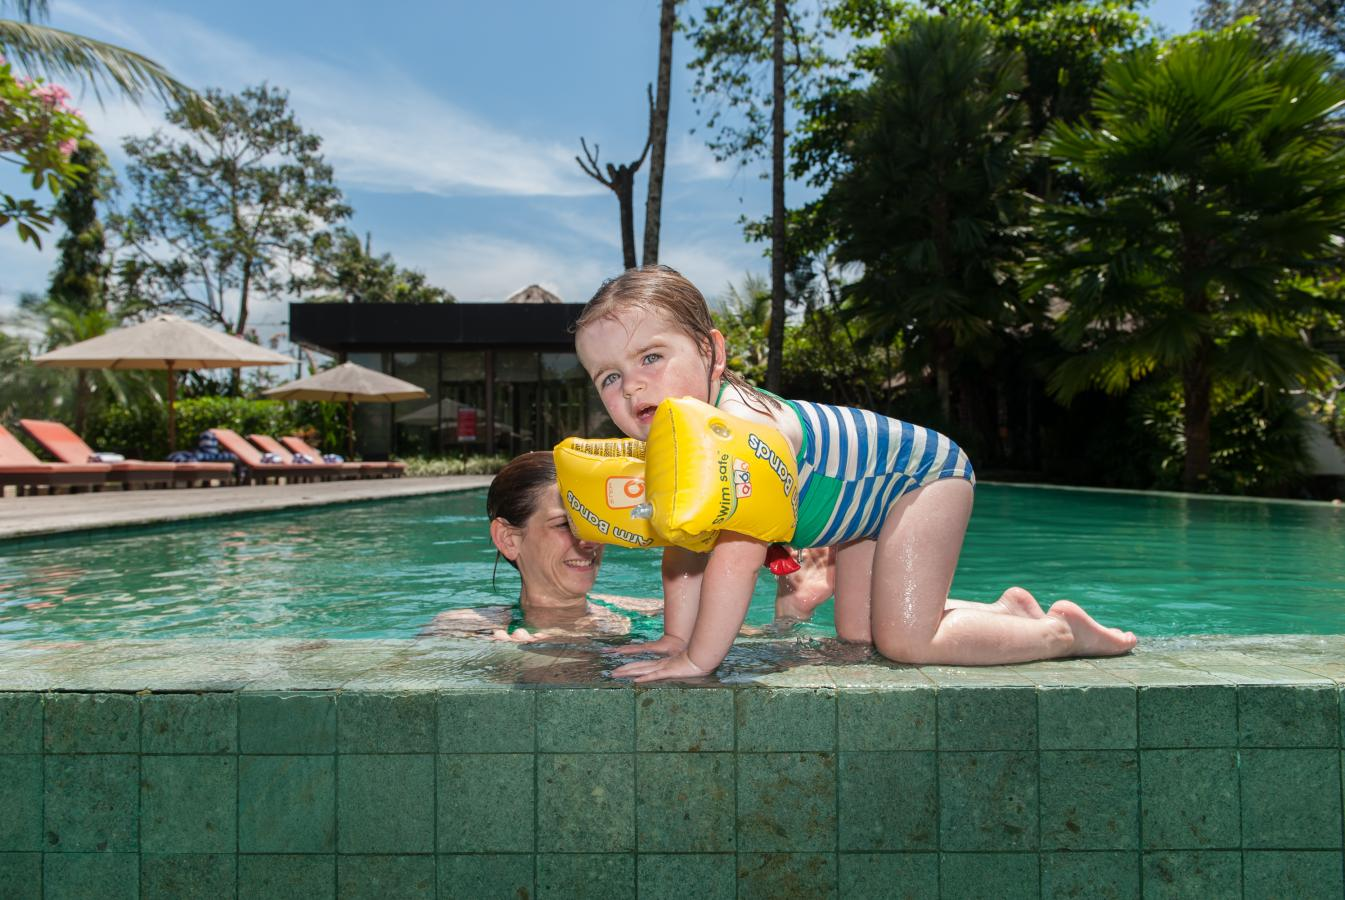 Billie-in-the-swimming-pool-of-the-hotel-Bali